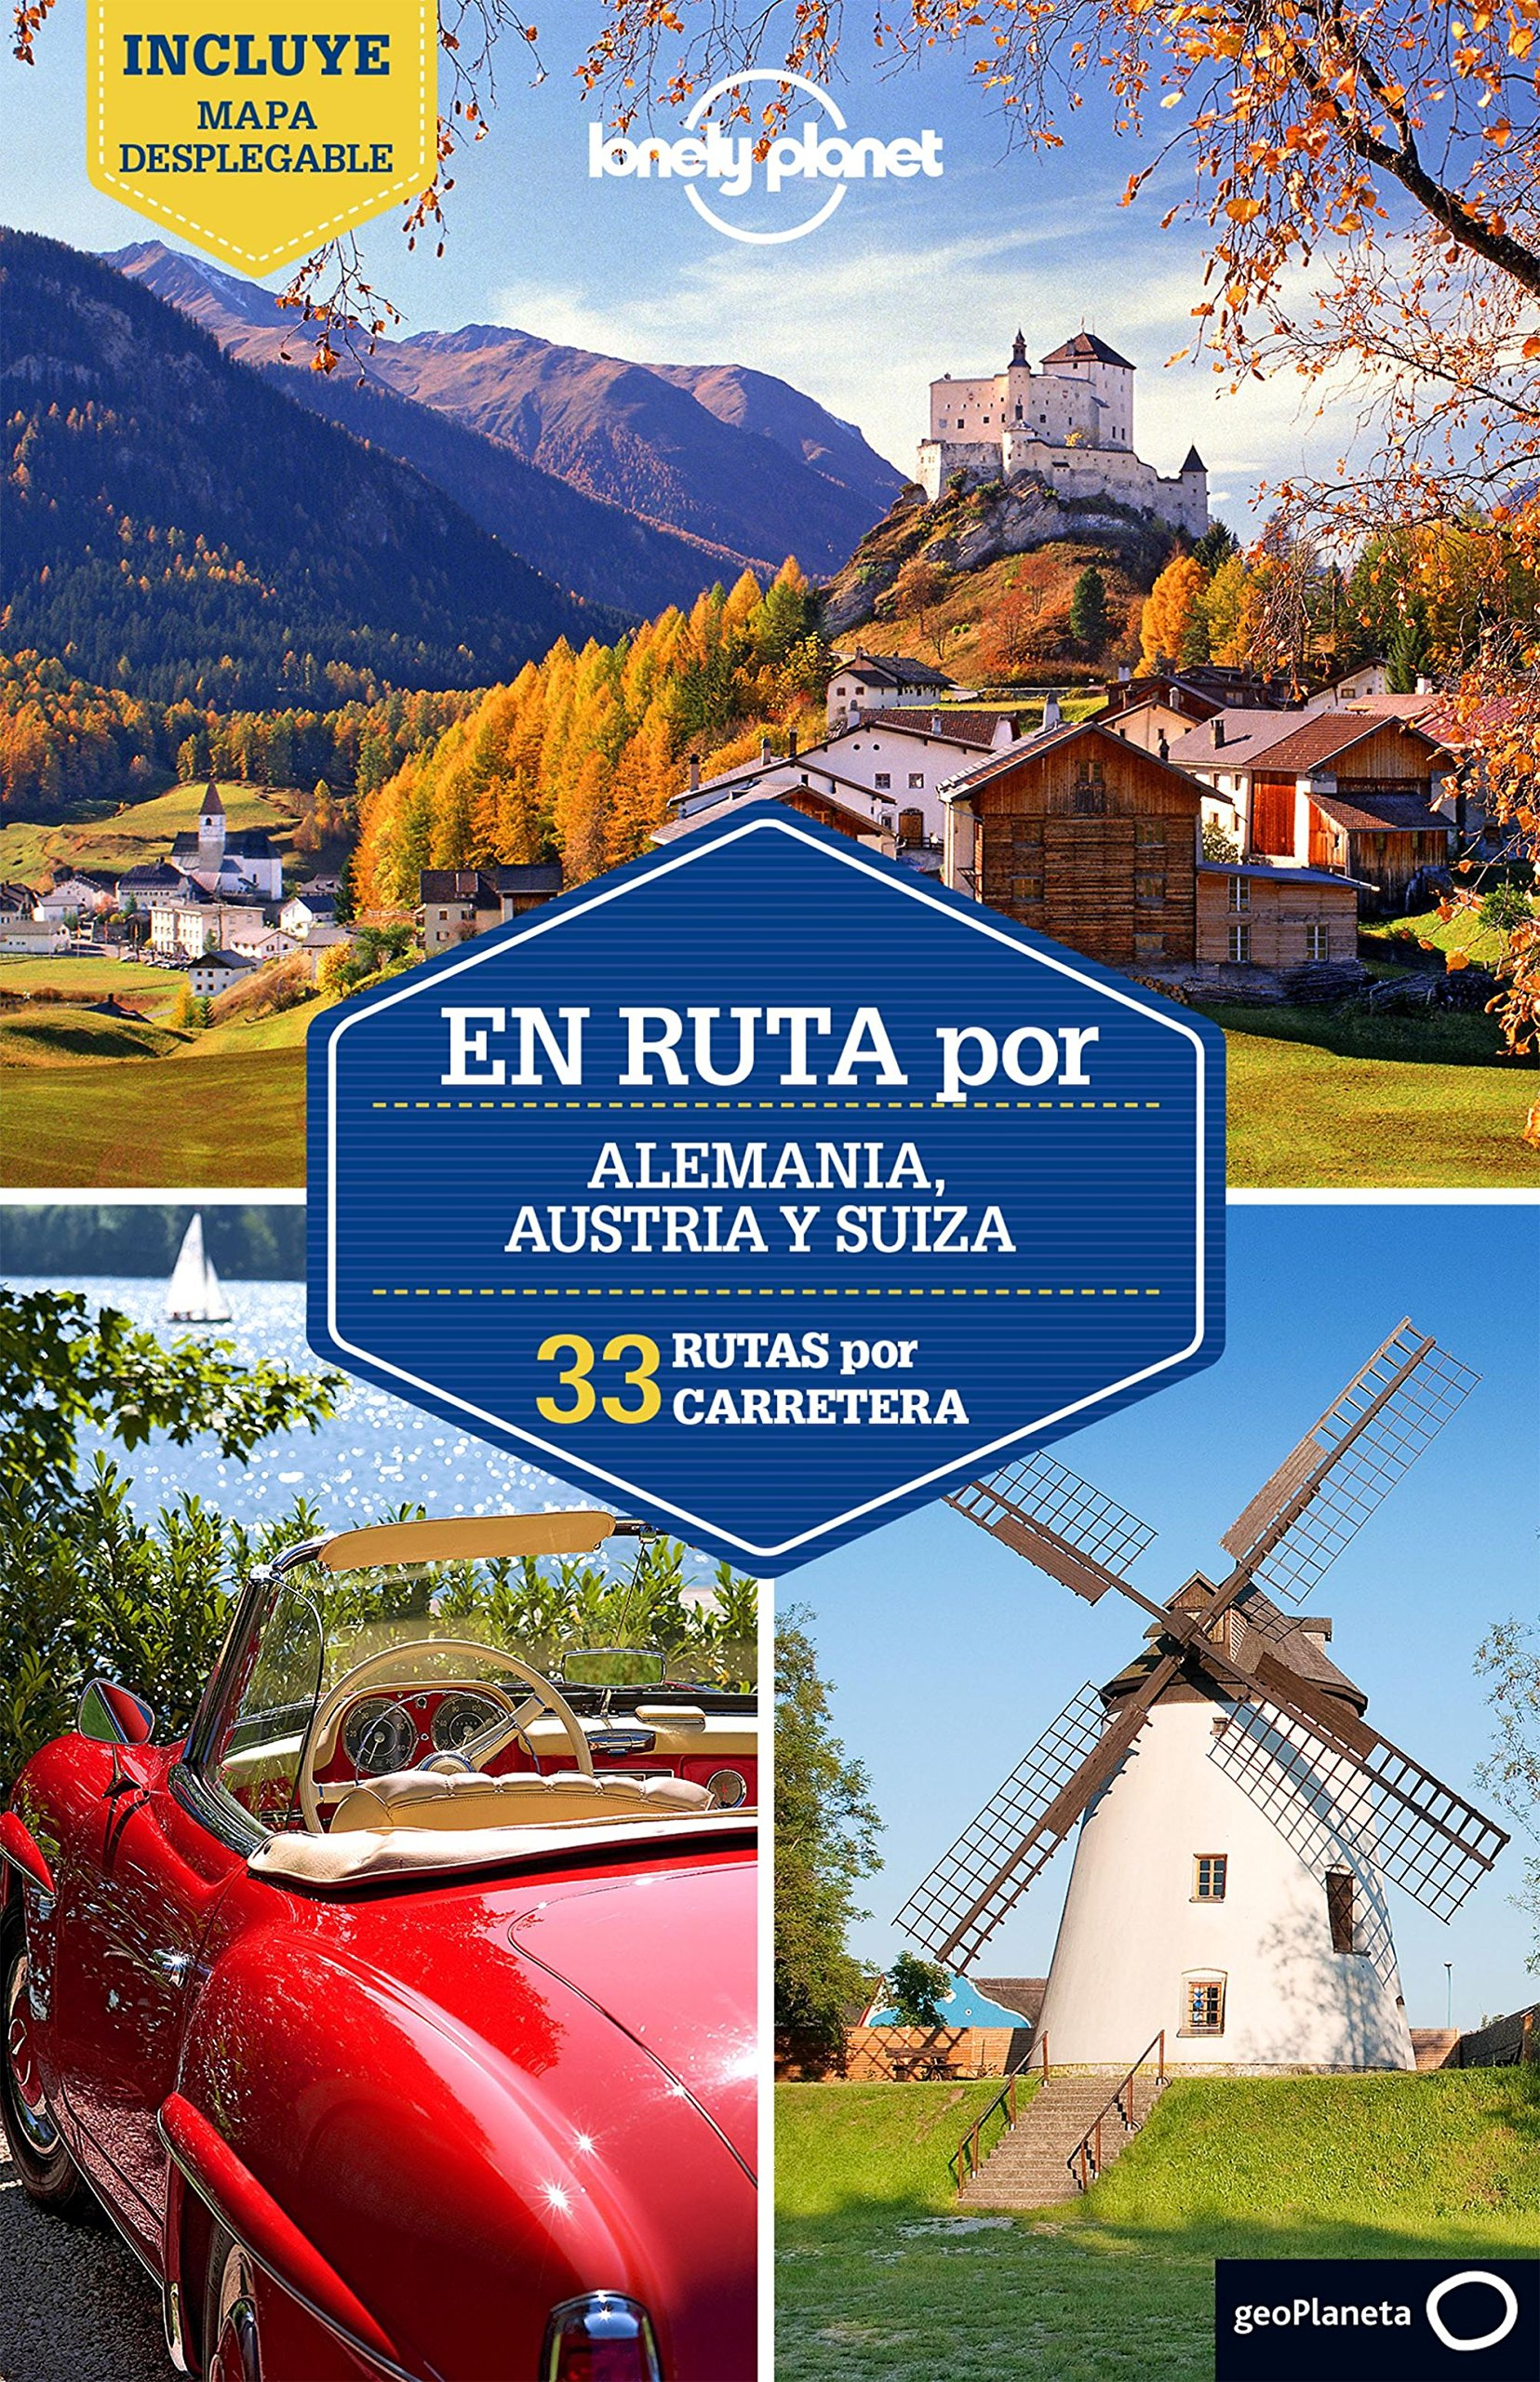 En ruta por Alemania, Austria y Suiza 1 Guías En ruta Lonely Planet: Amazon.es: Williams, Nicola, Walker, Benedict, O Brien, Sally, Schulte-Peevers, Andrea, Masters, Tom, Di Duca, Marc, Christiani, Kerry, Le Nevez,